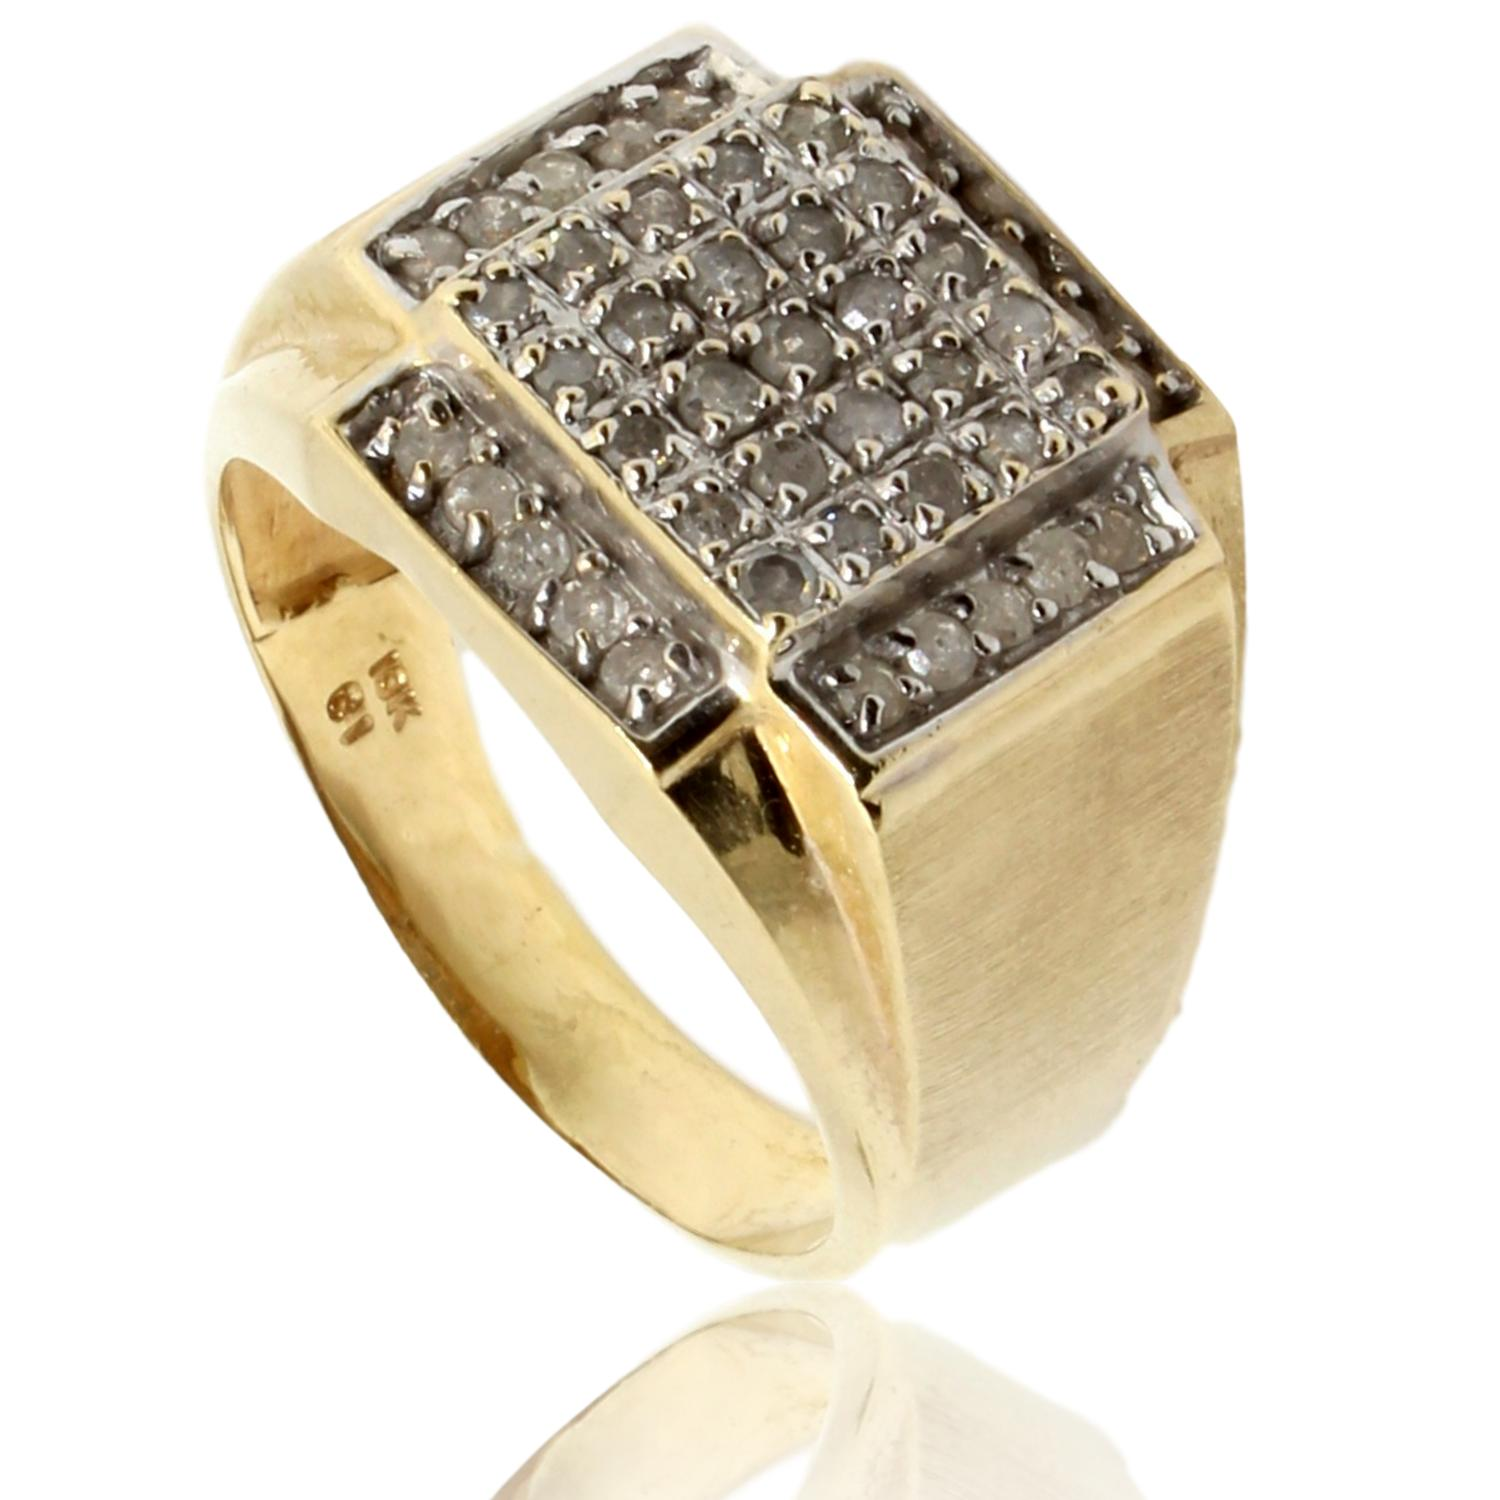 10K-Gold-1ctw-Mens-Diamond-Ring_82888A.jpg